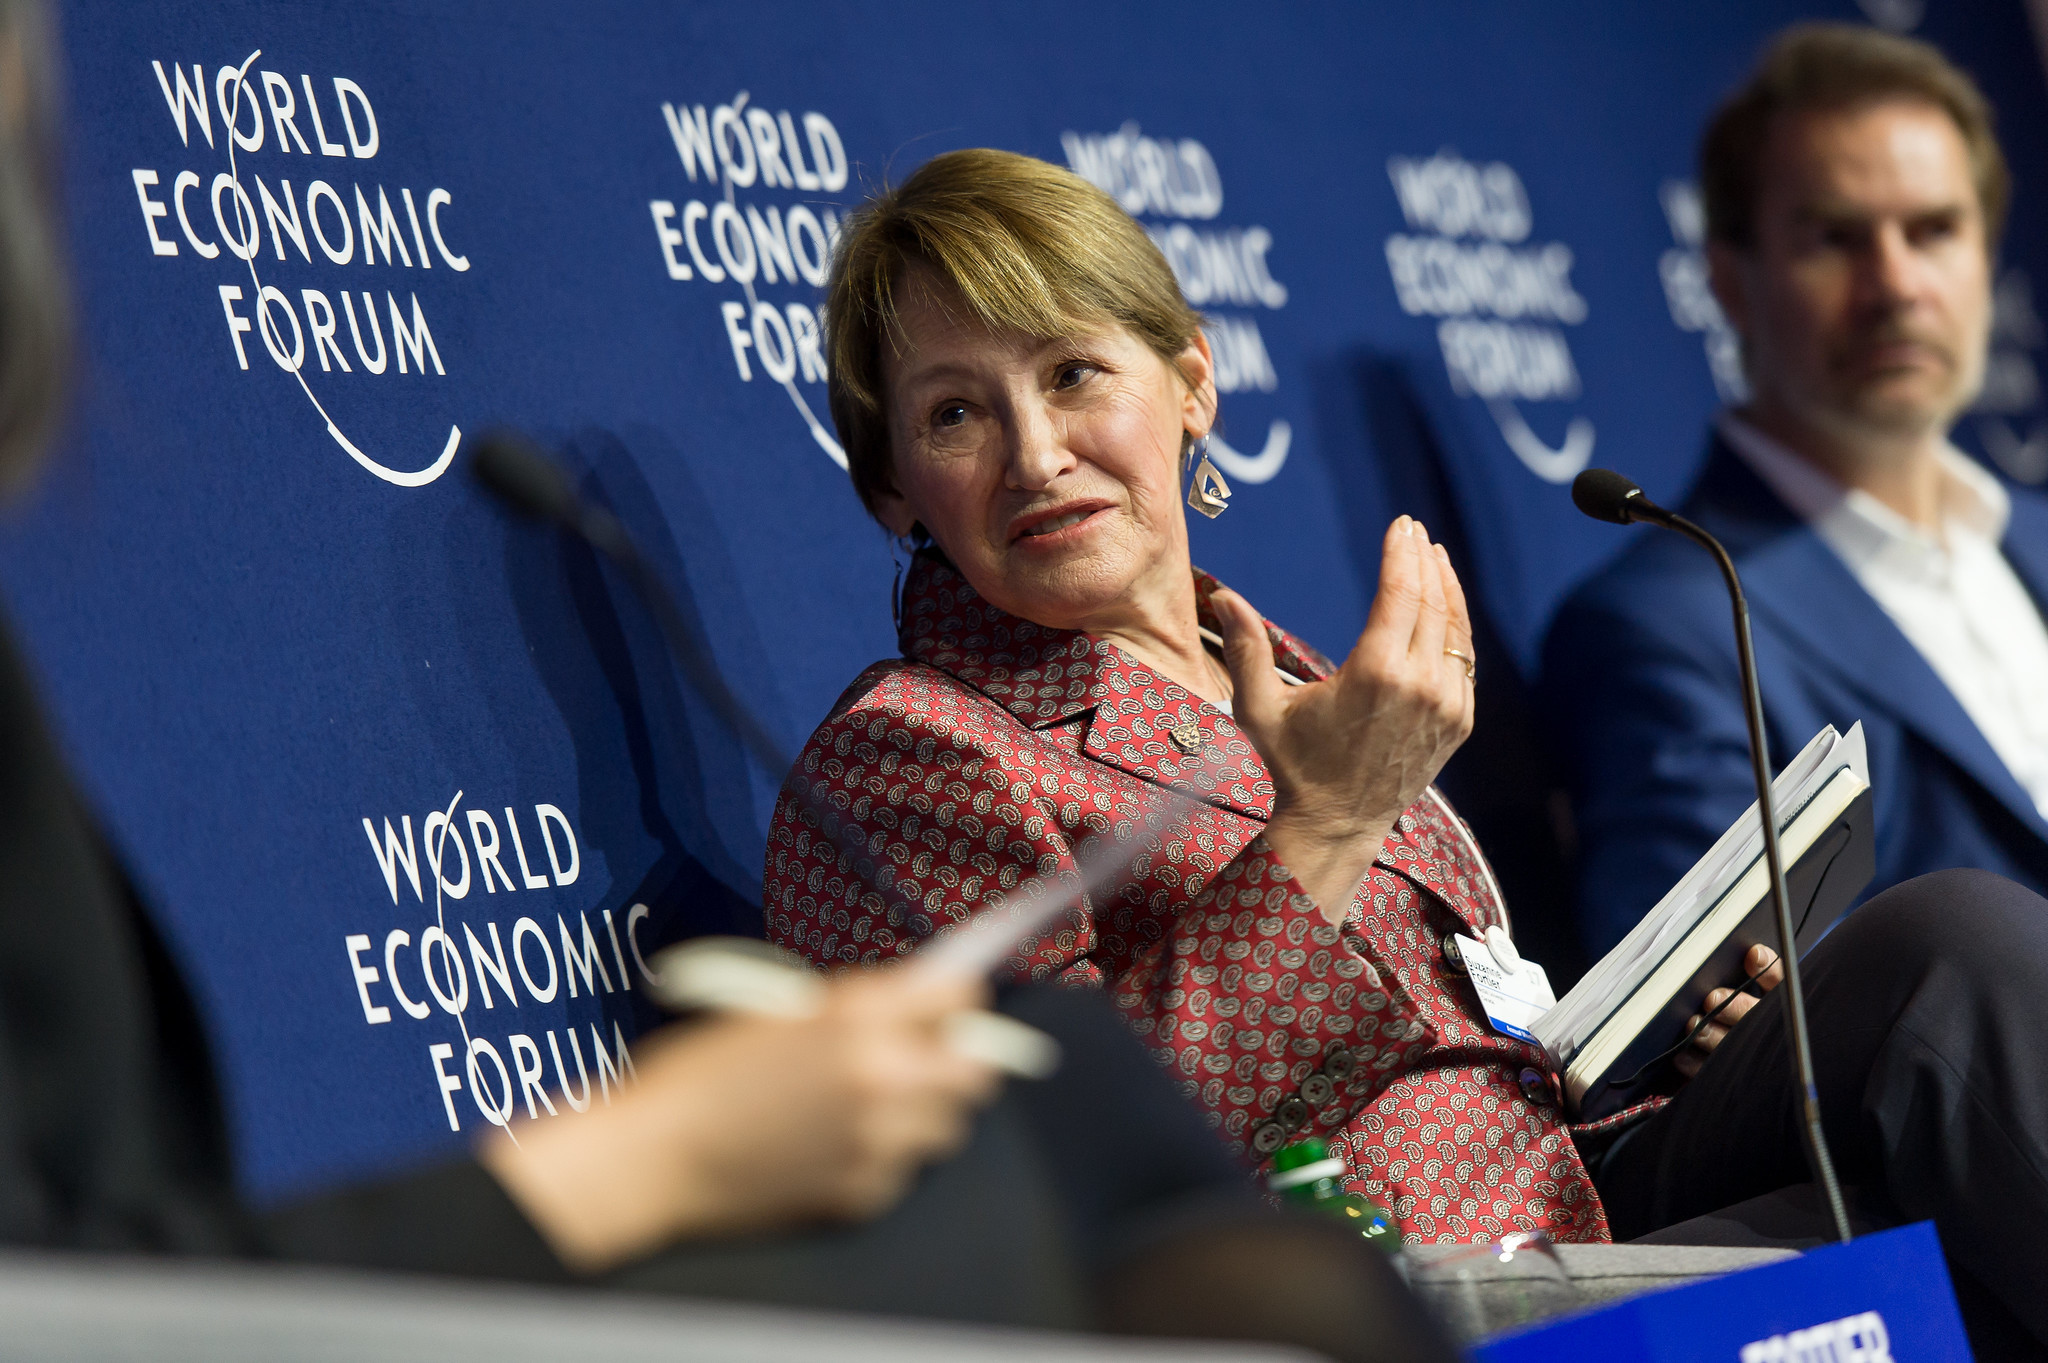 Suzanne Fortier, Principal and Vice-Chancellor, McGill University, Canada speaking during the Session: Jobs and the Fourth Industrial Revolution at the Annual Meeting 2017 of the World Economic Forum in Davos, January 19, 2017